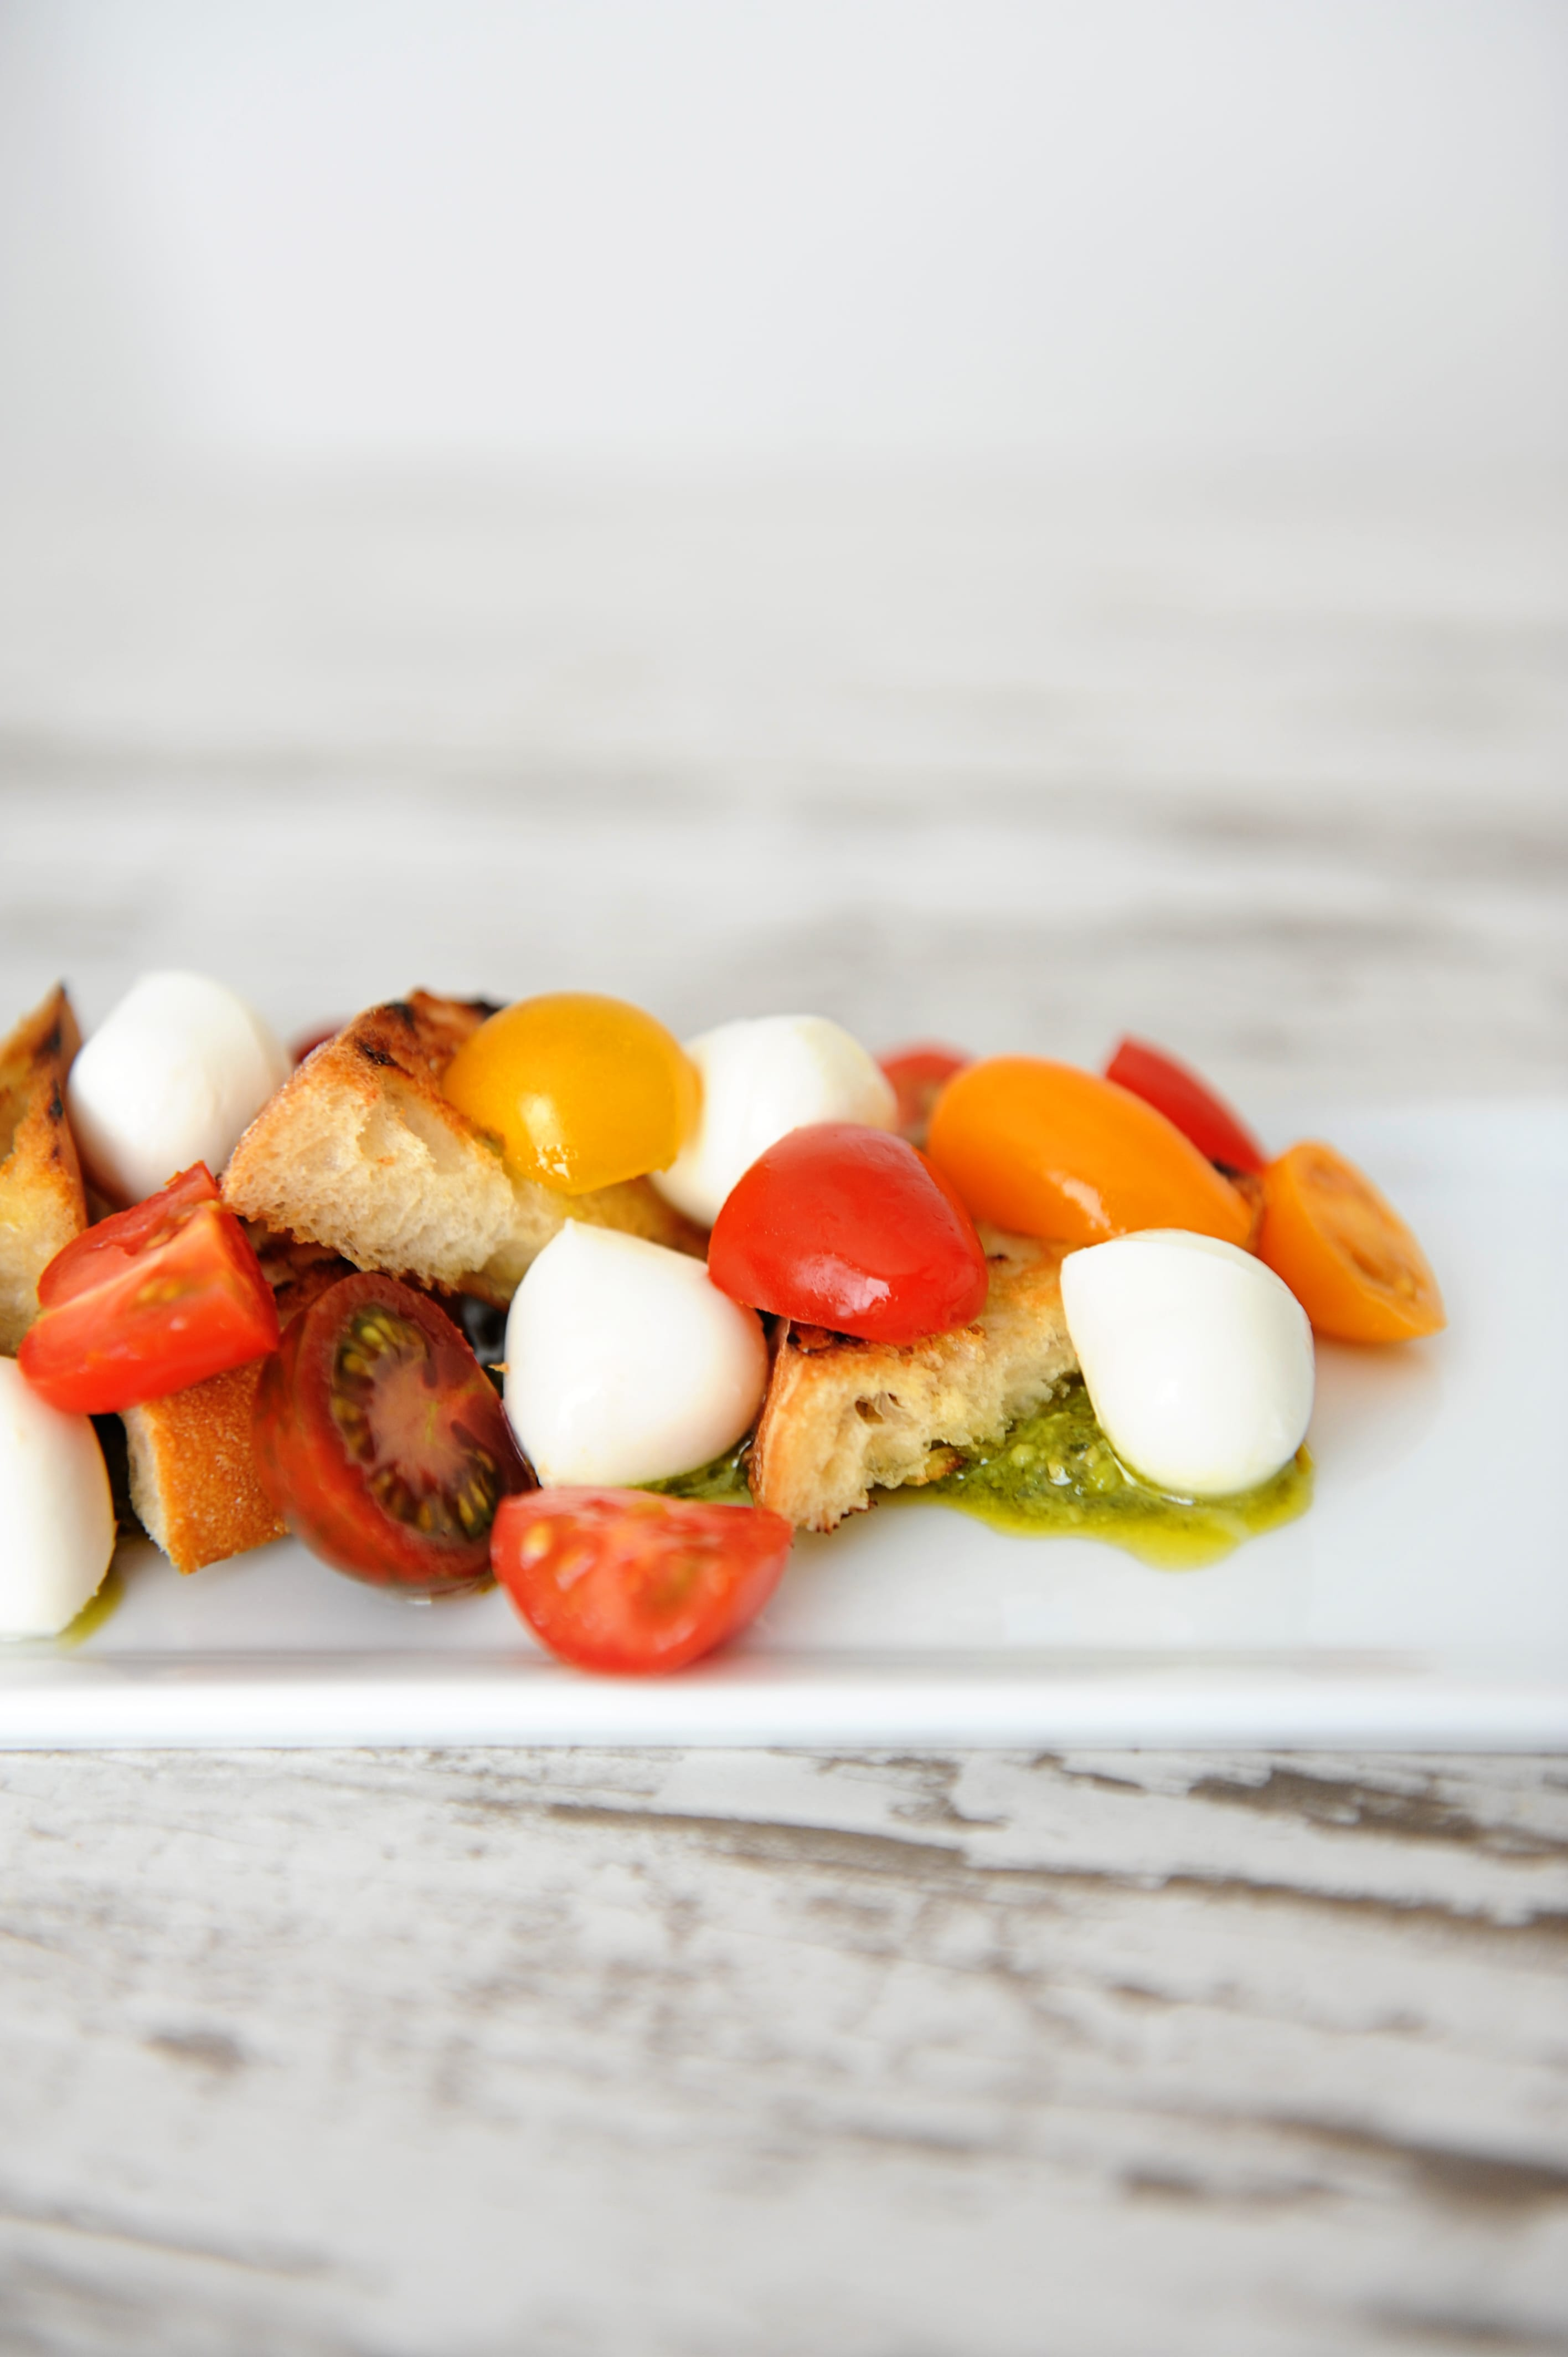 Easy burrata and heirloom tomatoes appetizer recipe step 3